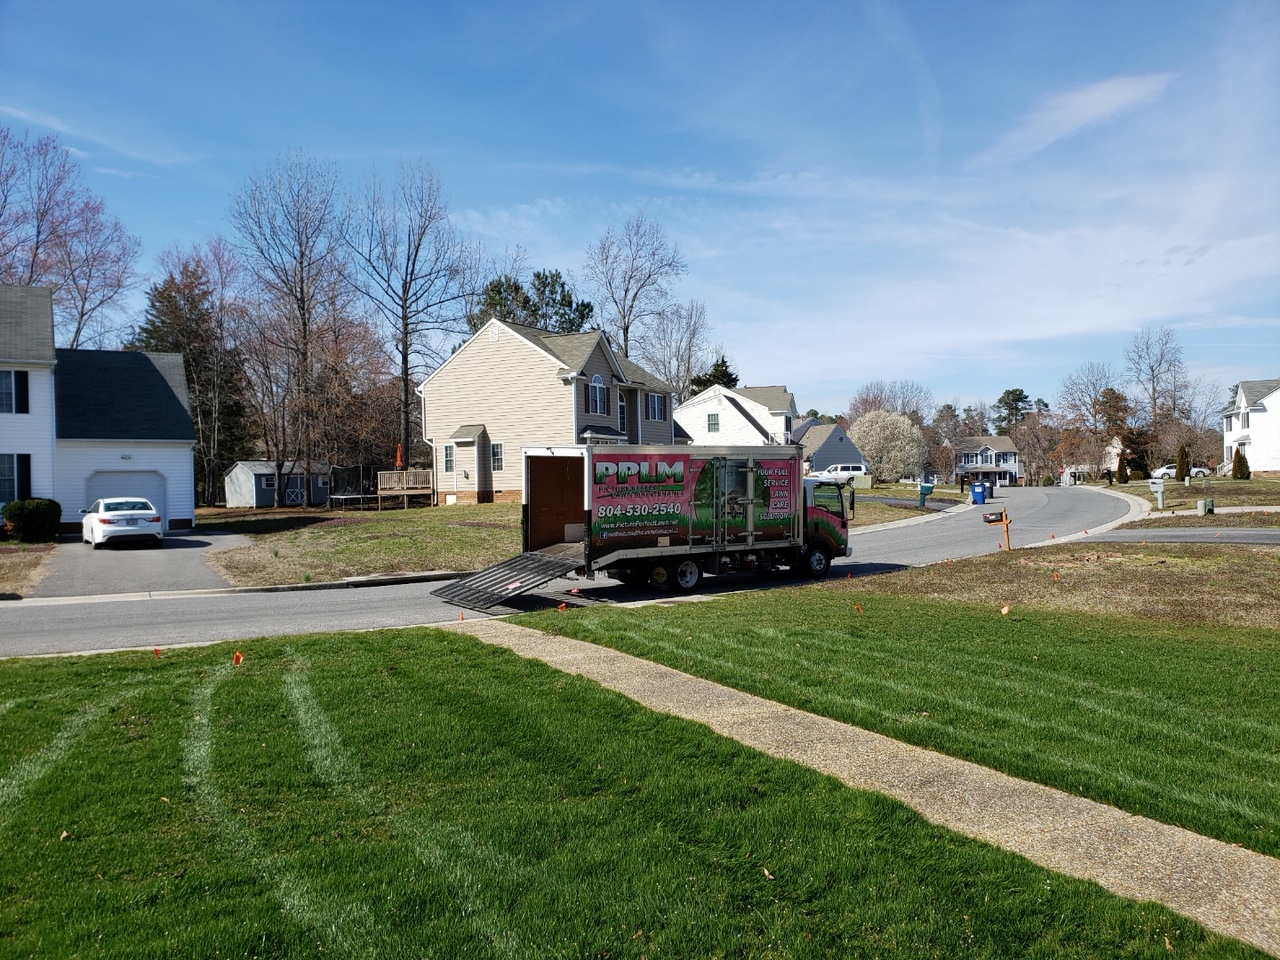 Getting a Lawn Care Estimate | The PPLM Sales Process